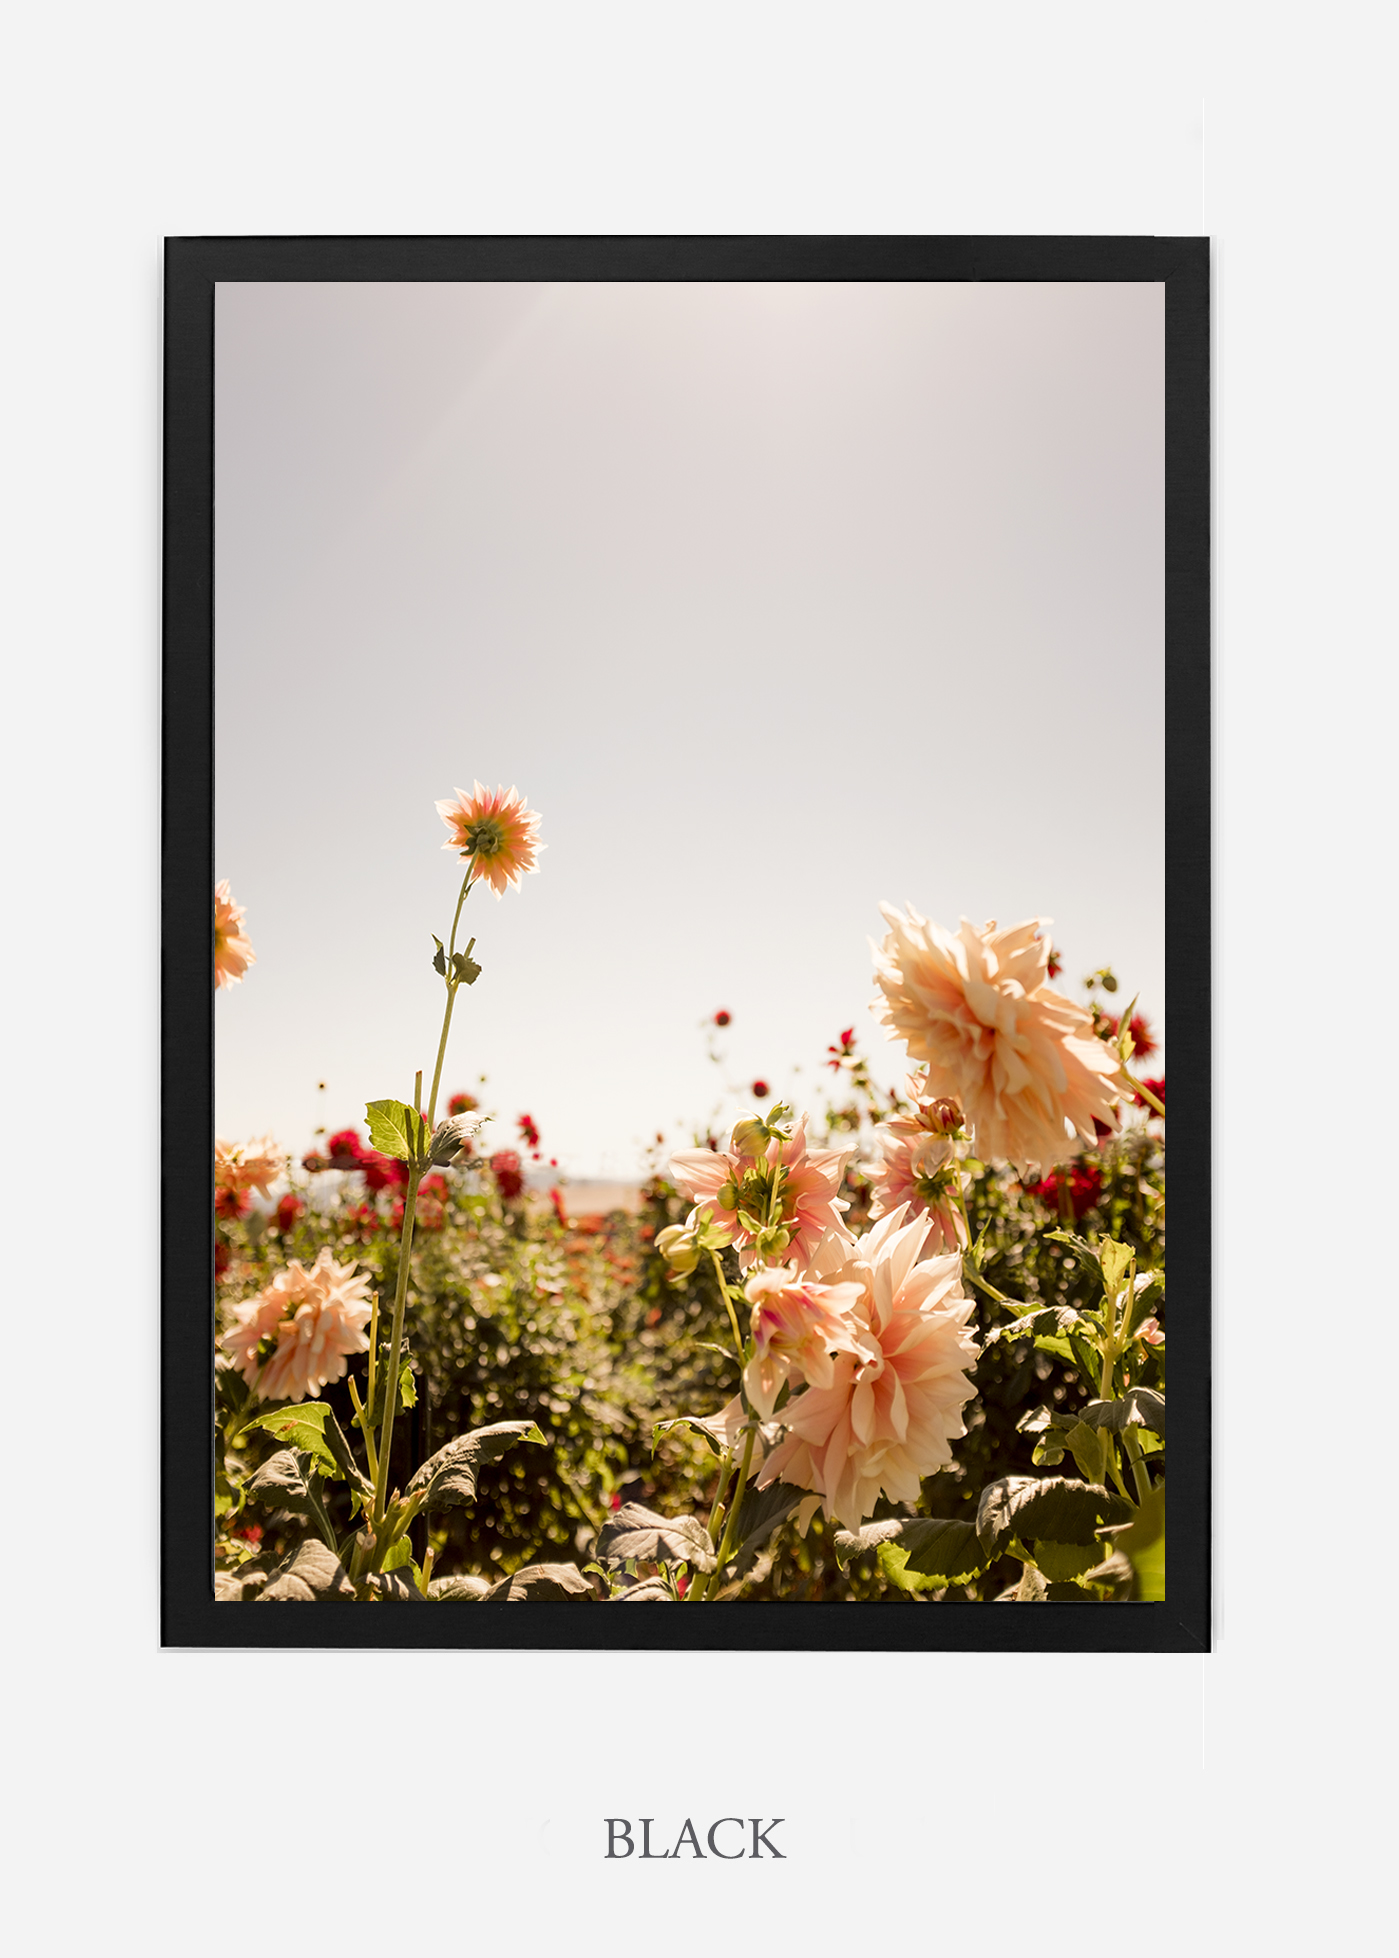 DahliaNo.6-black-frame-interior-design-botanical-print-art-wilder-california-wilder-paper.jpg